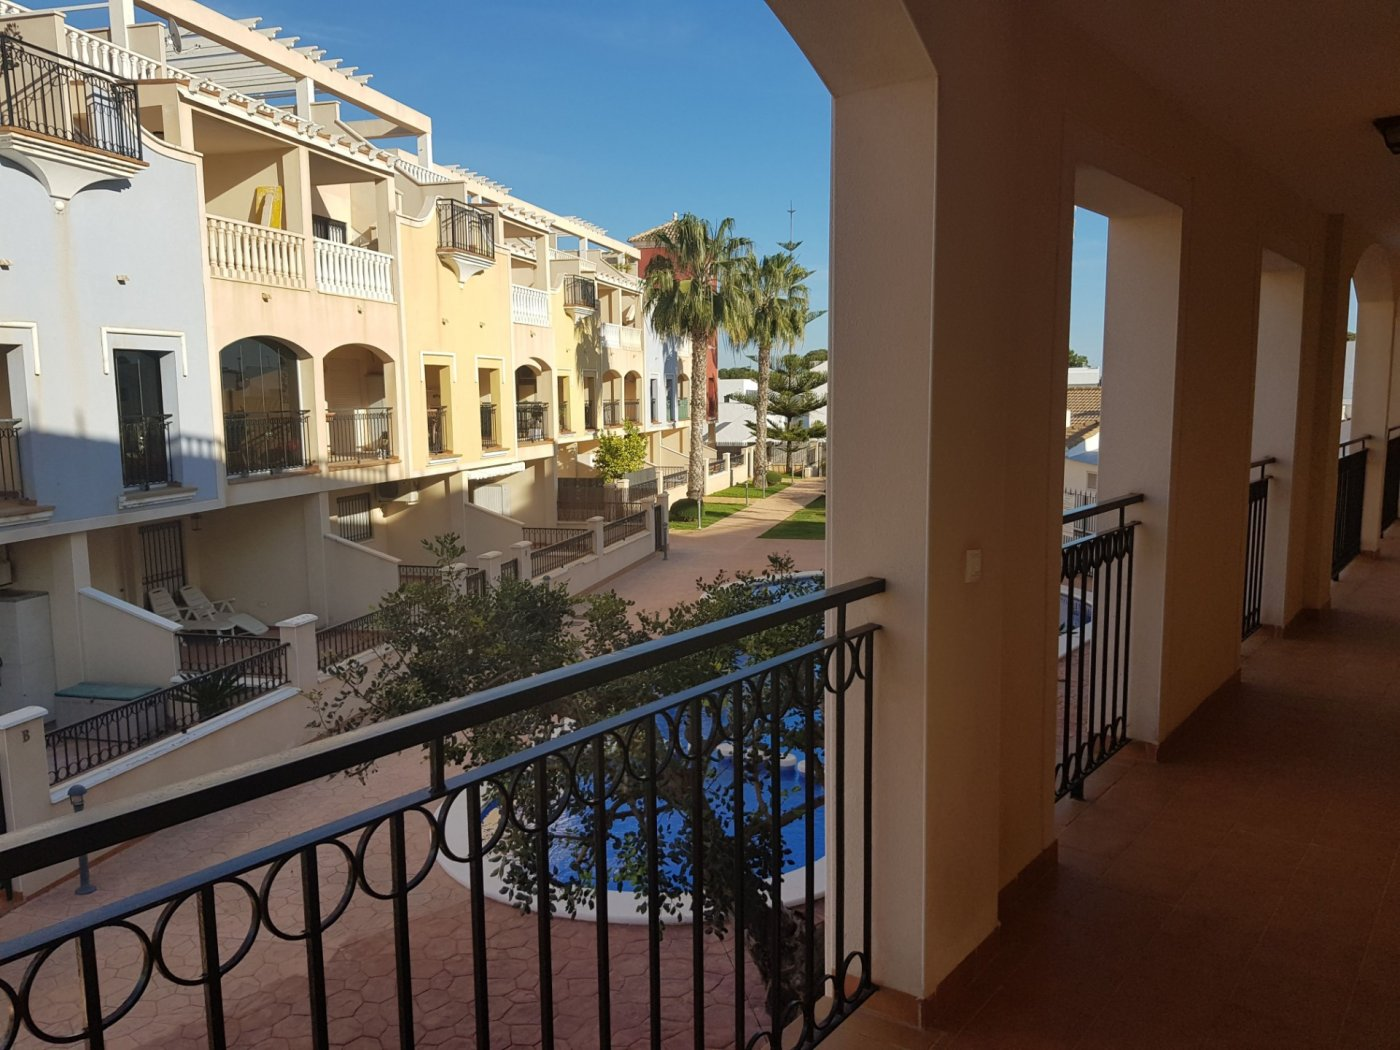 Gallery Image 27 of Fantastic corner apartment on walking distance of beach and shopping centre